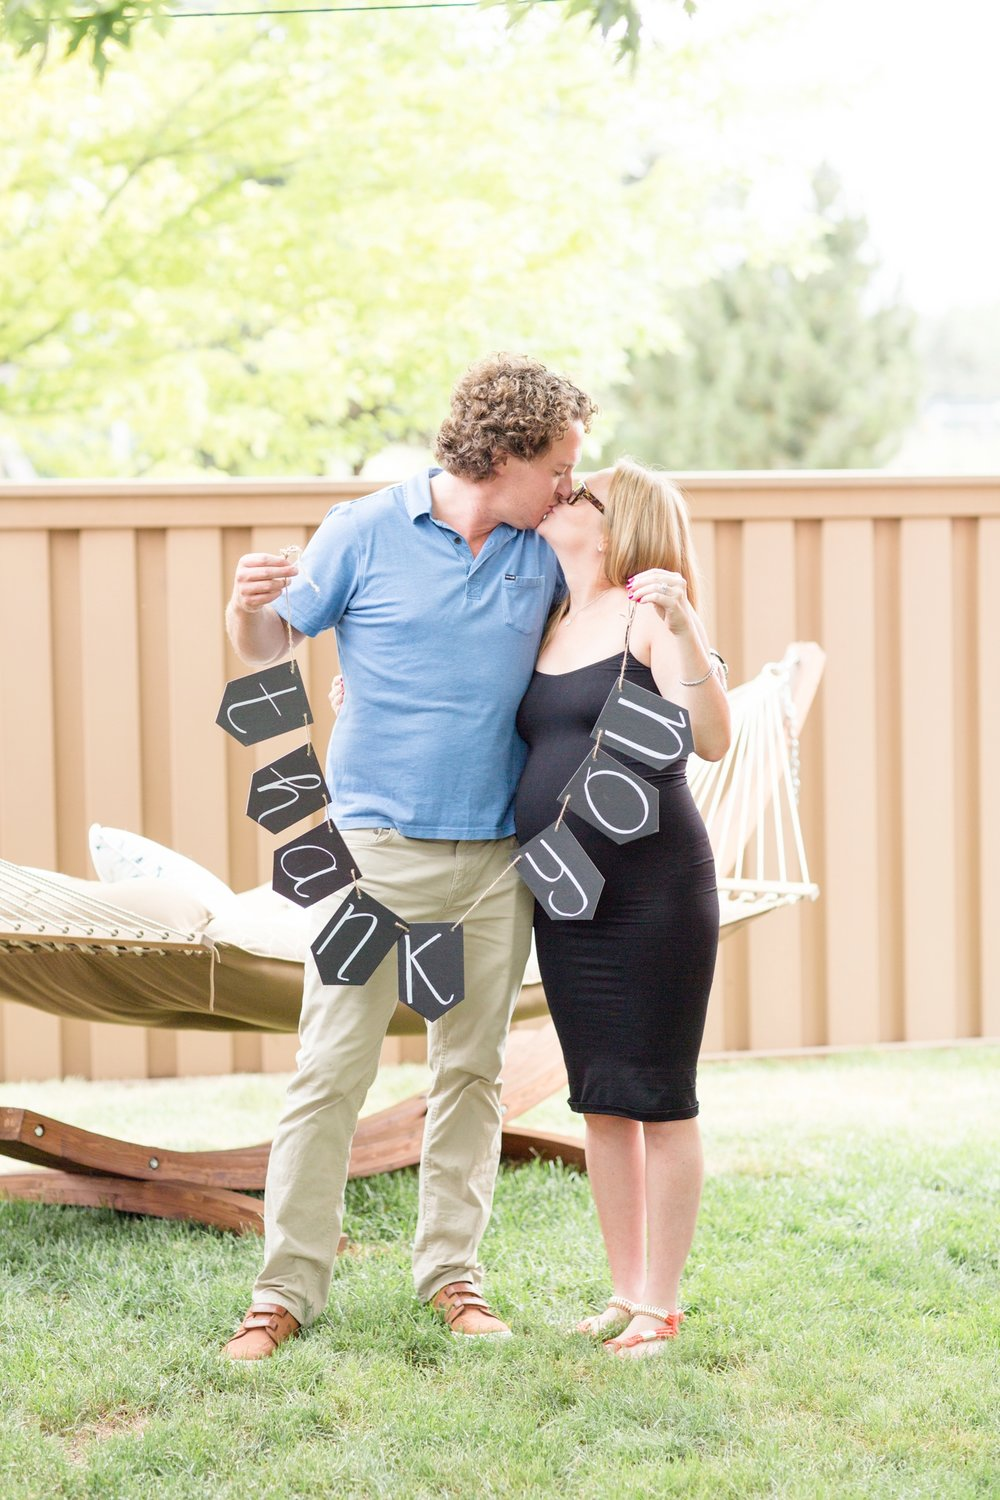 COUPLES  $450  60-90 minute photo session at location T.B.D. with one outfit change. Pricing includes session fee,35+ thoughtfully edited high resolution digital images with full print release and personal viewing collection.